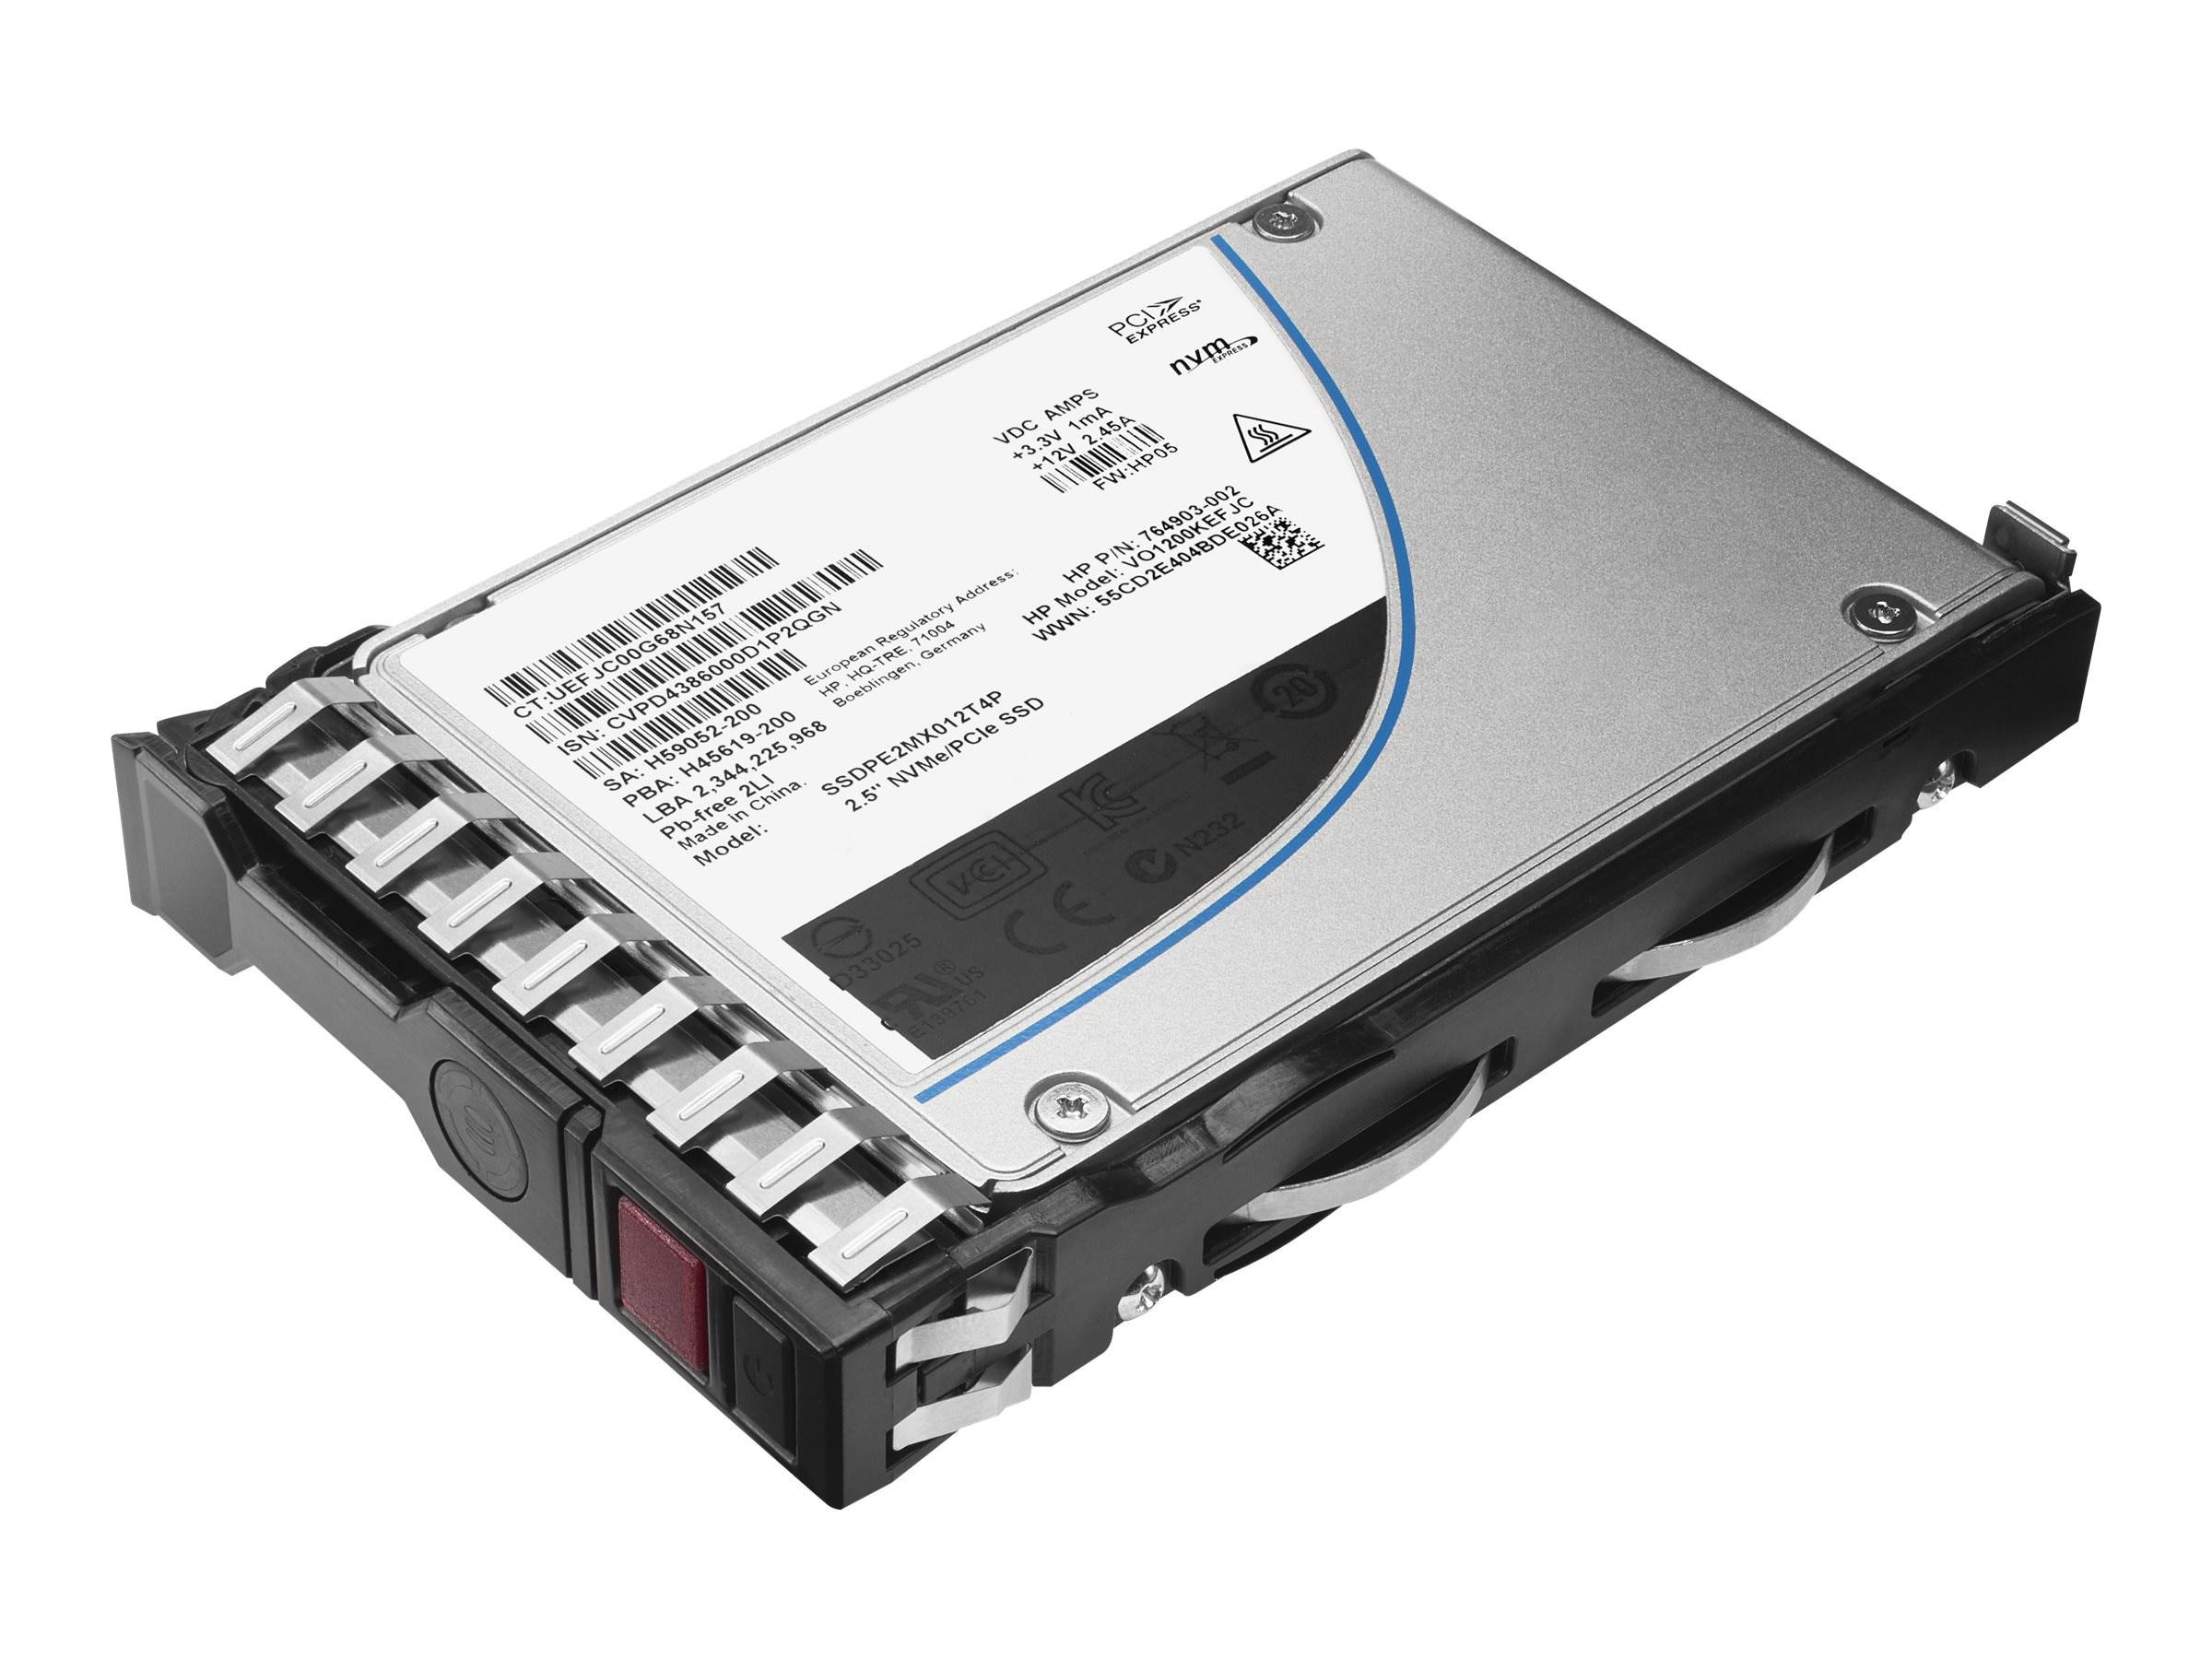 HPE 1.6TB SAS 12Gb s Write Intensive-1 SFF 2.5 SC Solid State Drive for HPE Gen8 Servers & Beyond, 846432-B21, 31846519, Solid State Drives - Internal